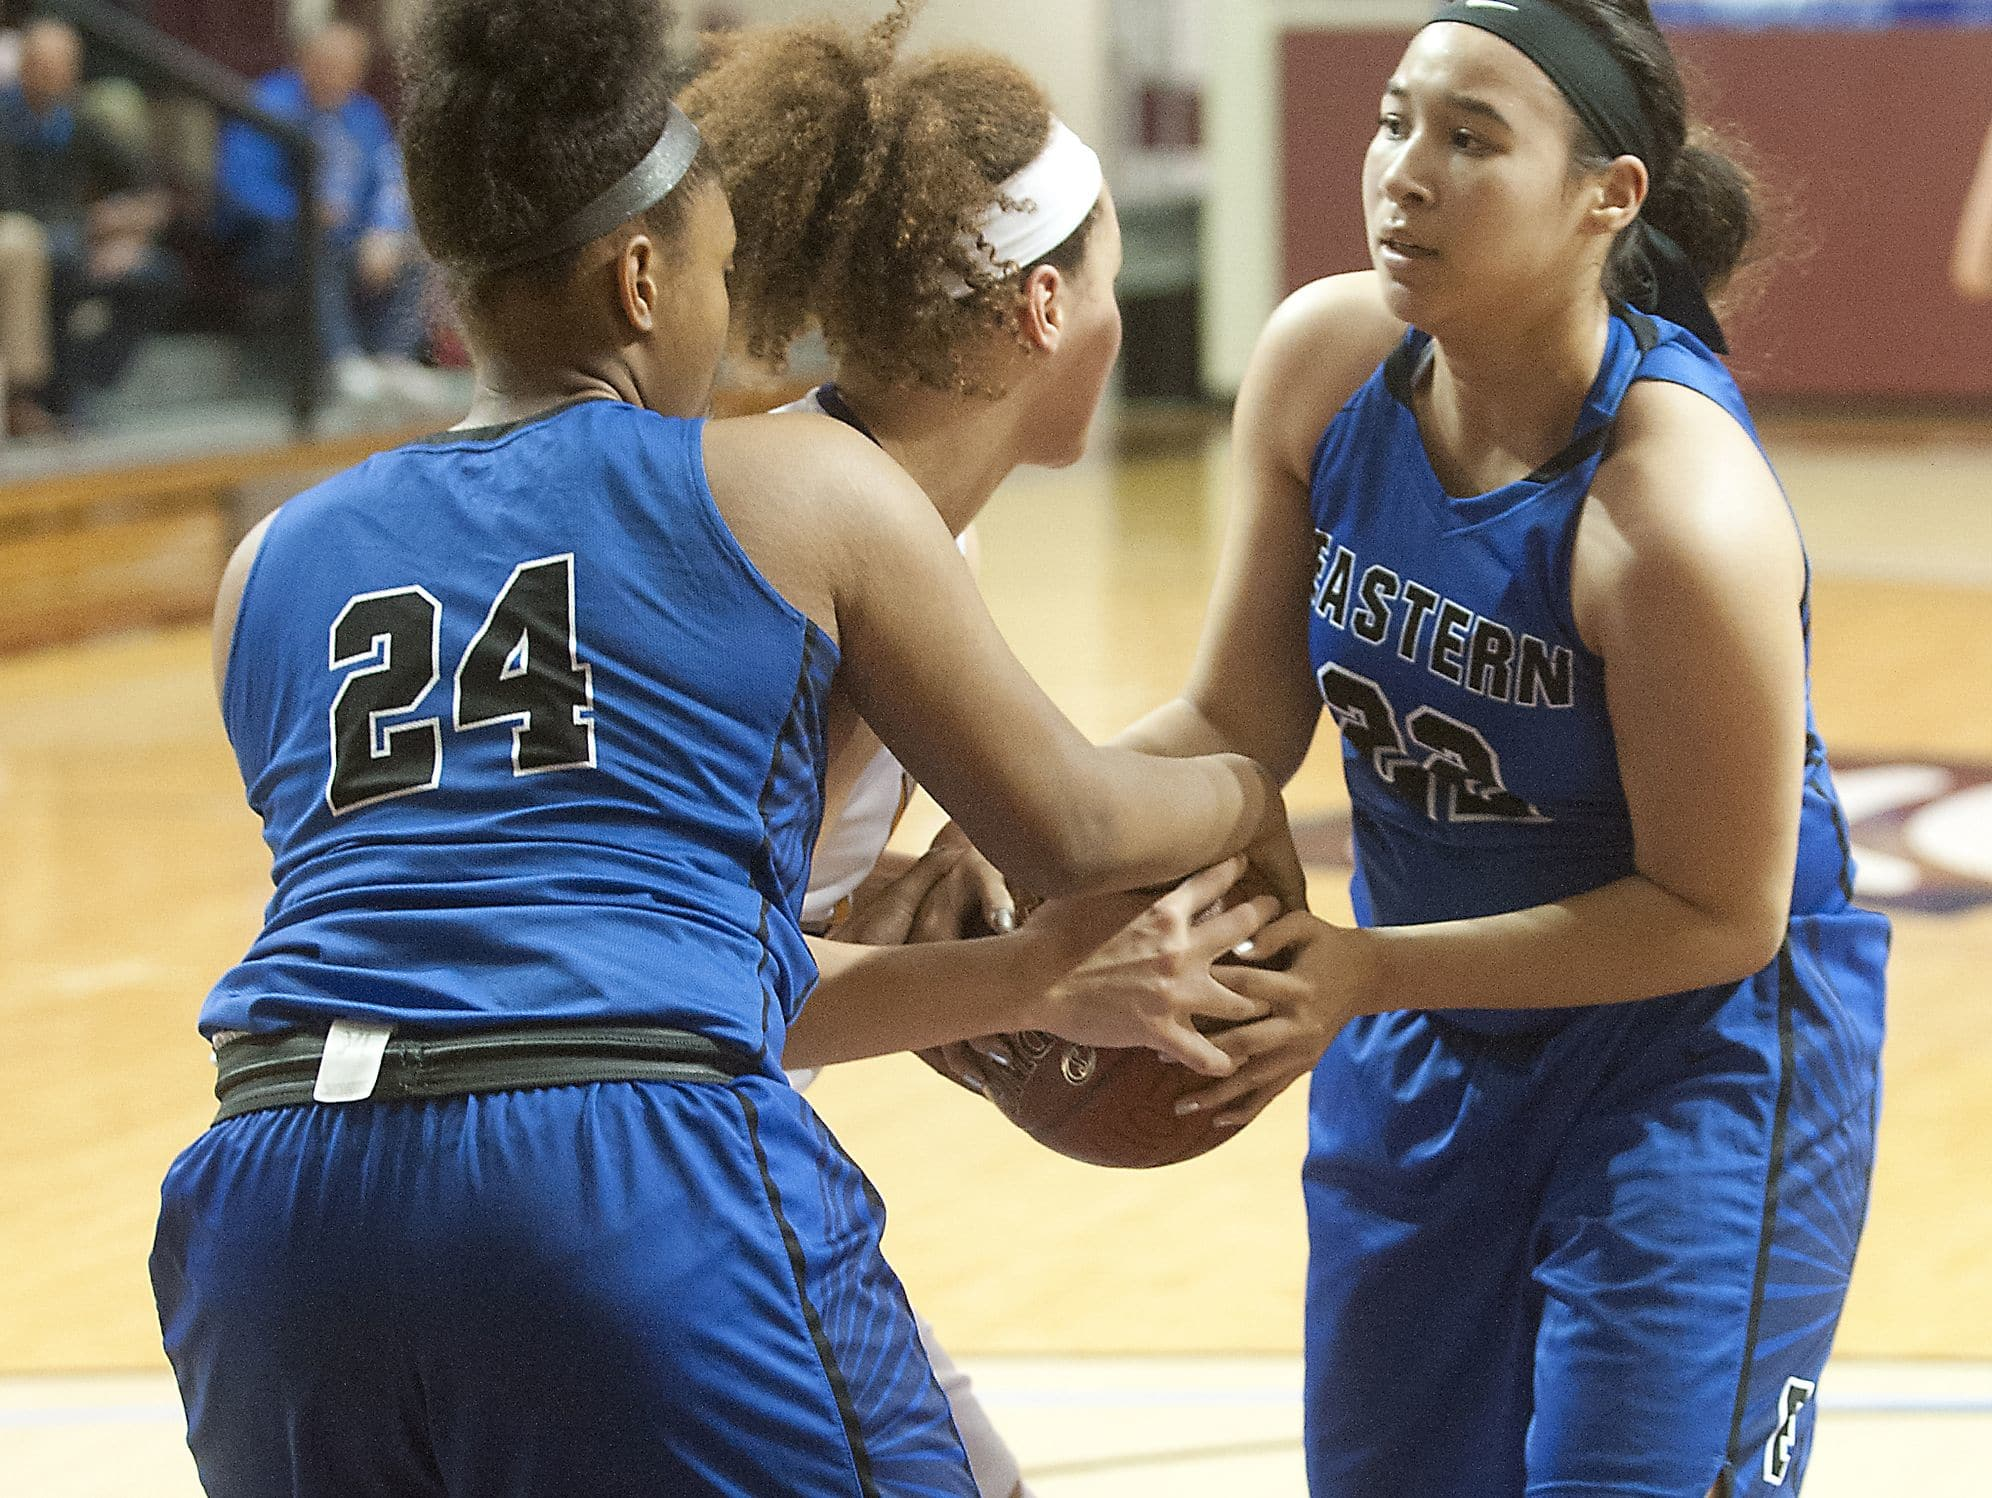 Eastern center Destiny Houseal, left, and Eastern guard-forward Natalie Collins tie up Male center Cameron Browning in the second round of the Girls LIT. 25 January 2017